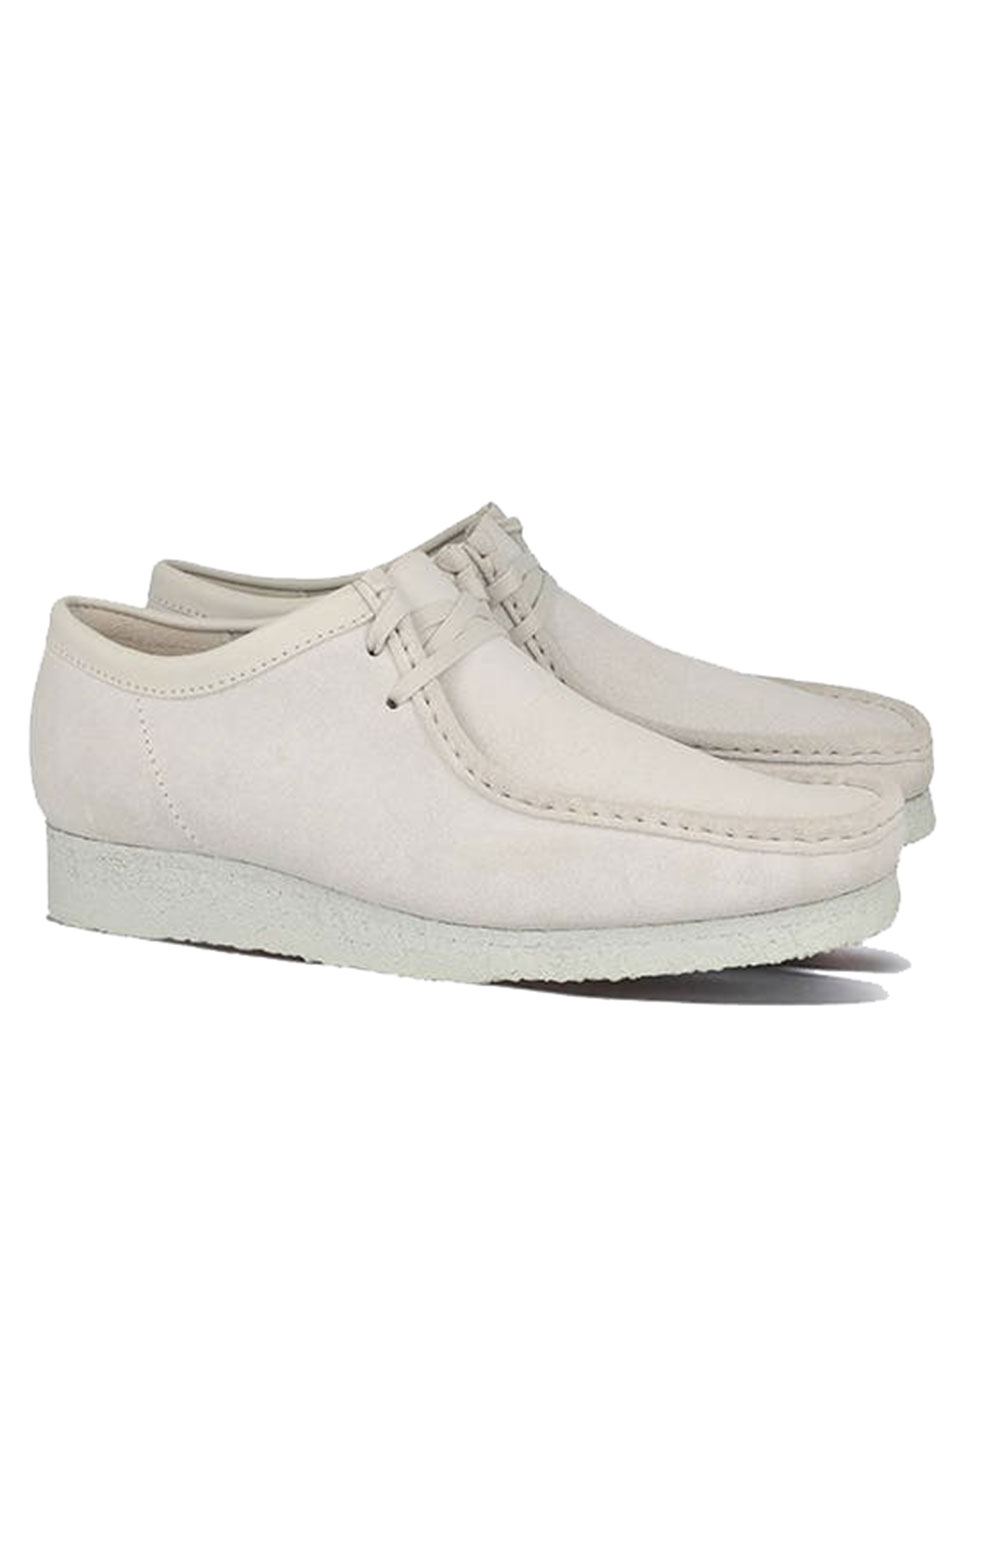 (26158421) Wallabee Shoes - White Suede 5